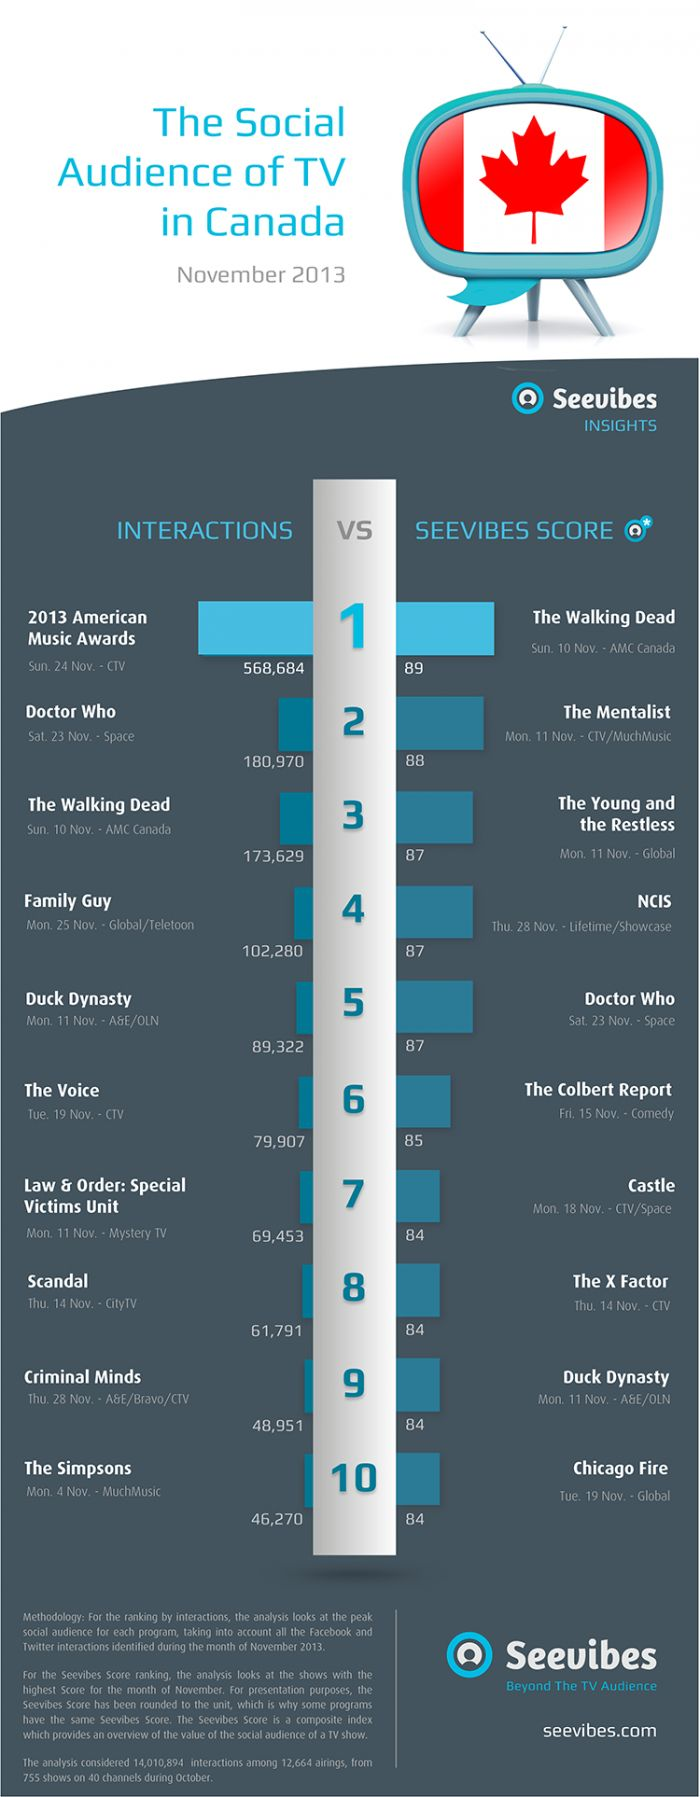 Top 10 Most Popular TV Shows on Social Media in Canada #socialtv #infographic